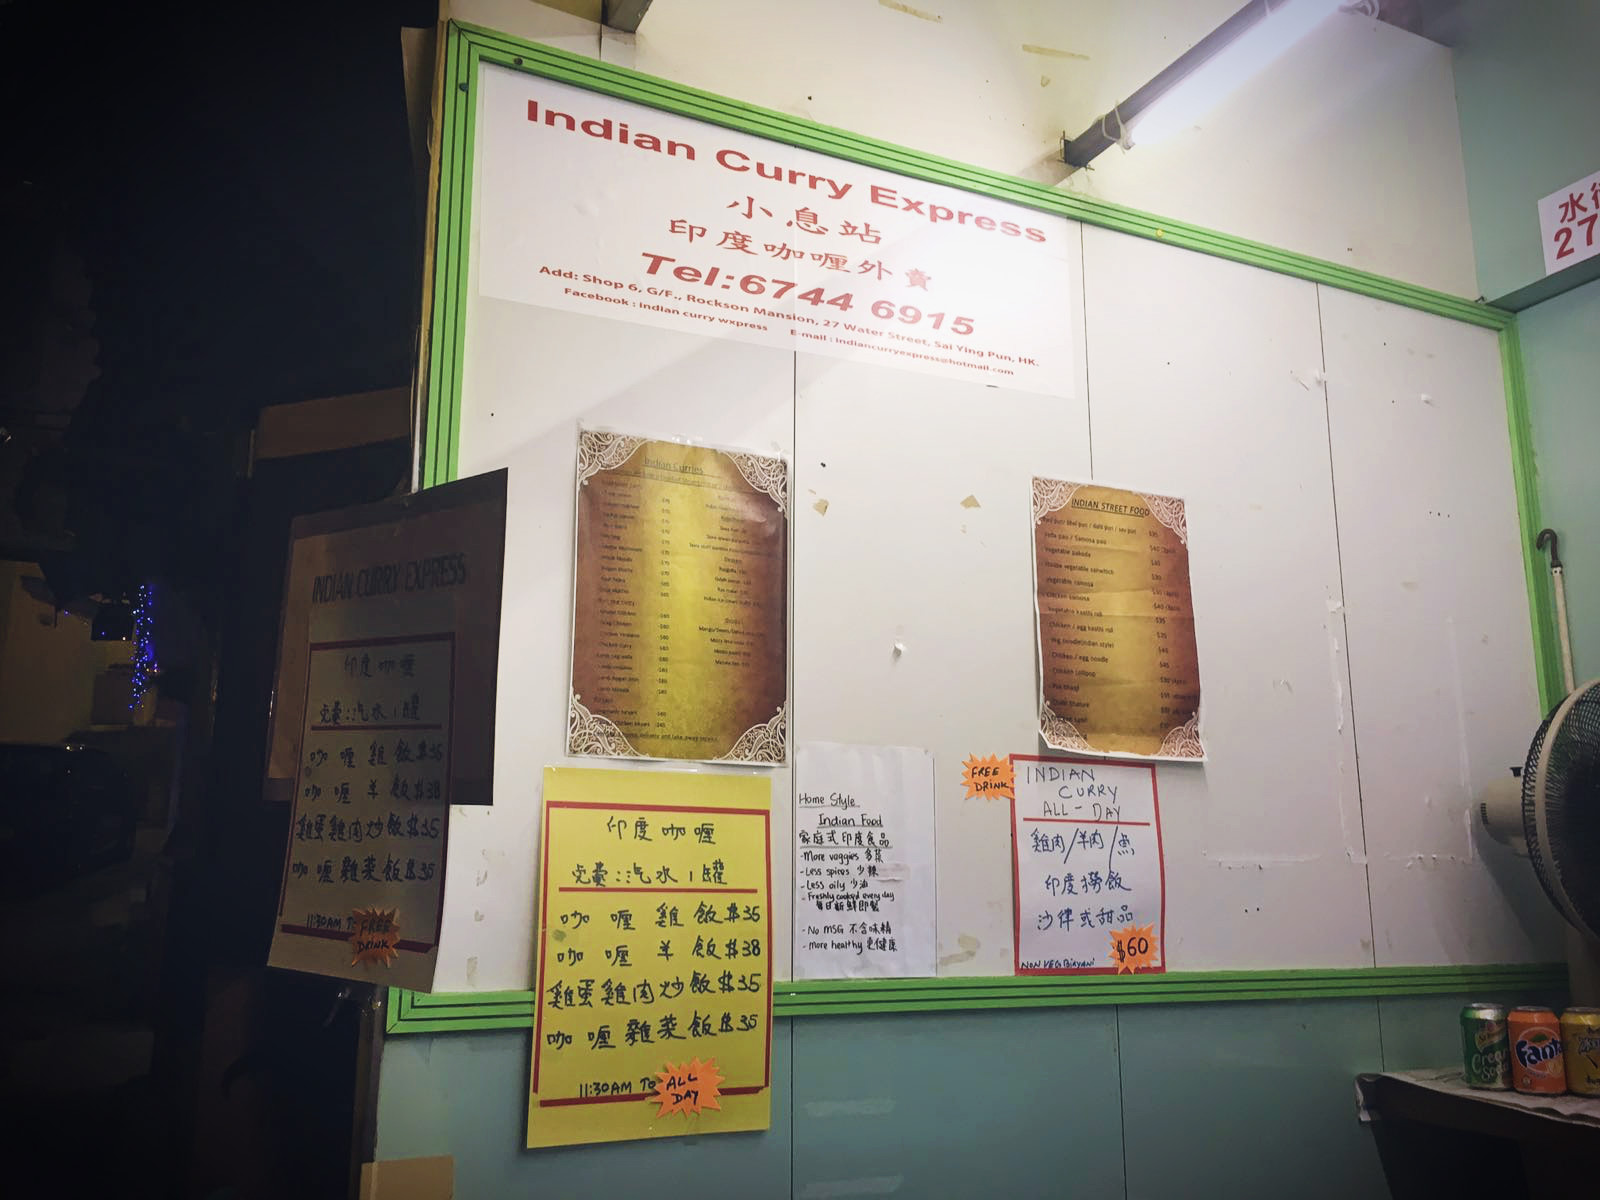 Indian Curry Express in Sai Ying Pun